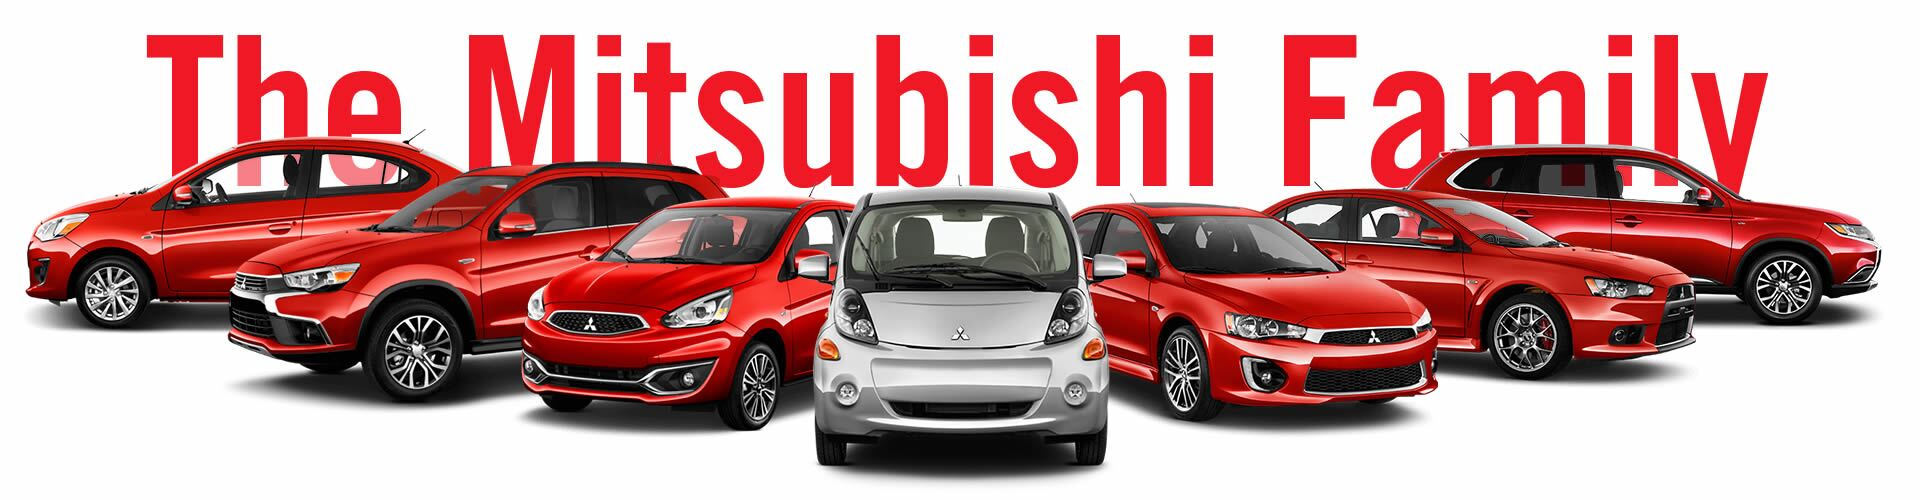 Meet The Mitsubishi Family